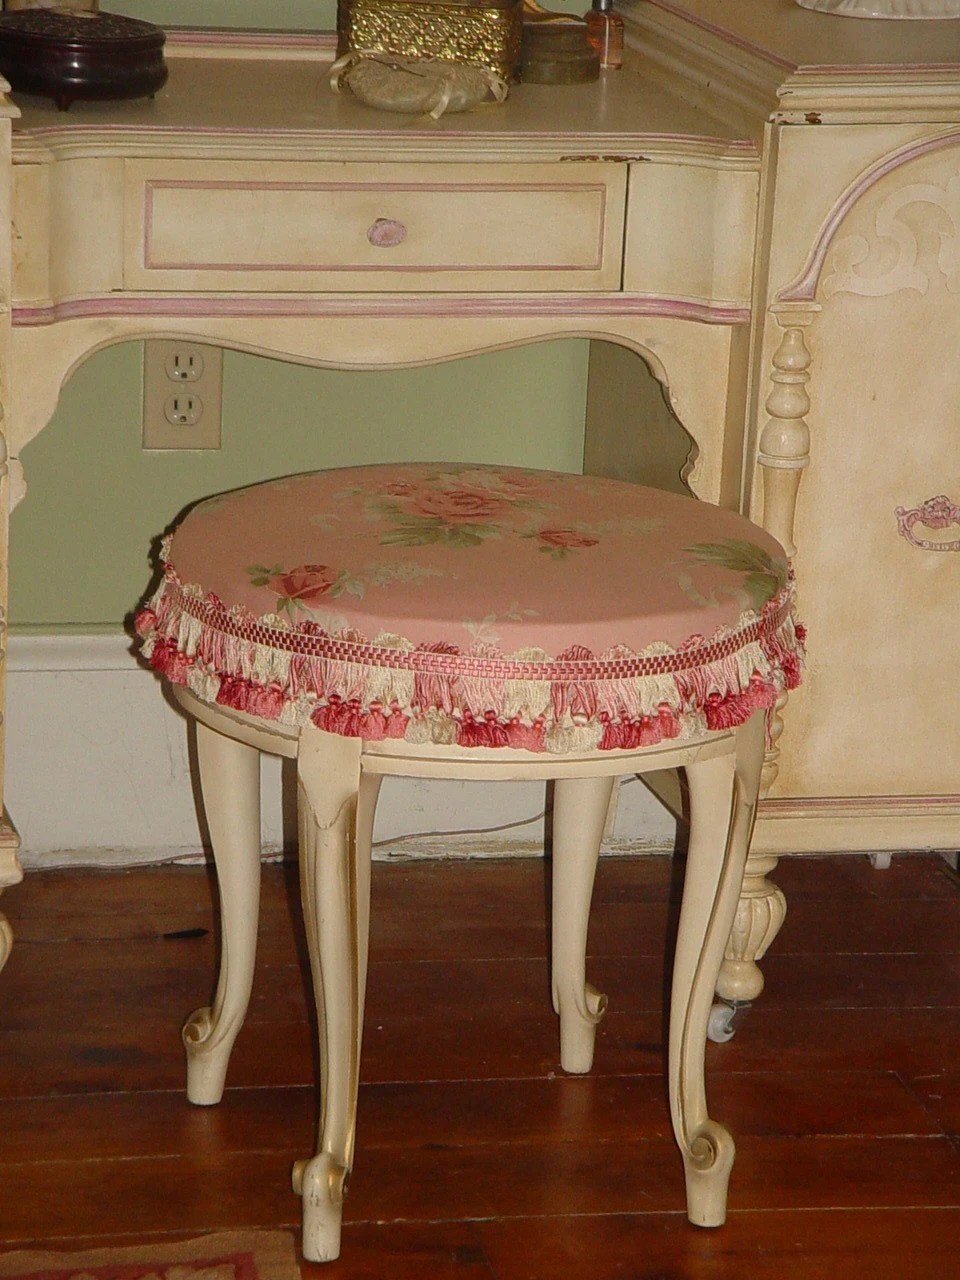 ANTIQUE FRENCH VANITY BENCH CABRIOLE LEG SHABBY by